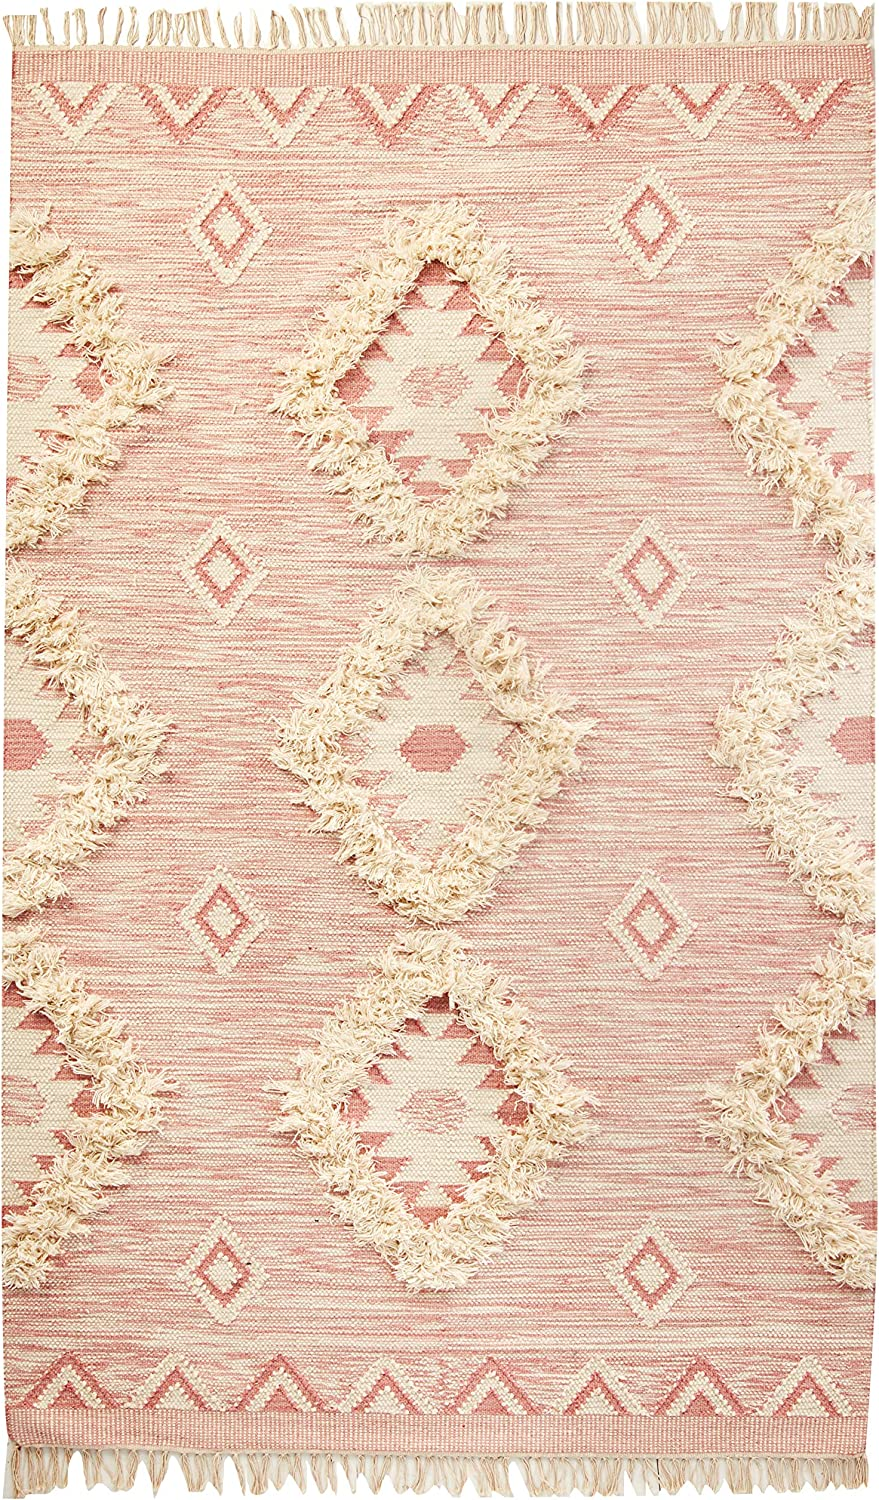 Amazon Com Nuloom Savannah Moroccan Fringe Area Rug 5 X 8 Pink Furniture Decor